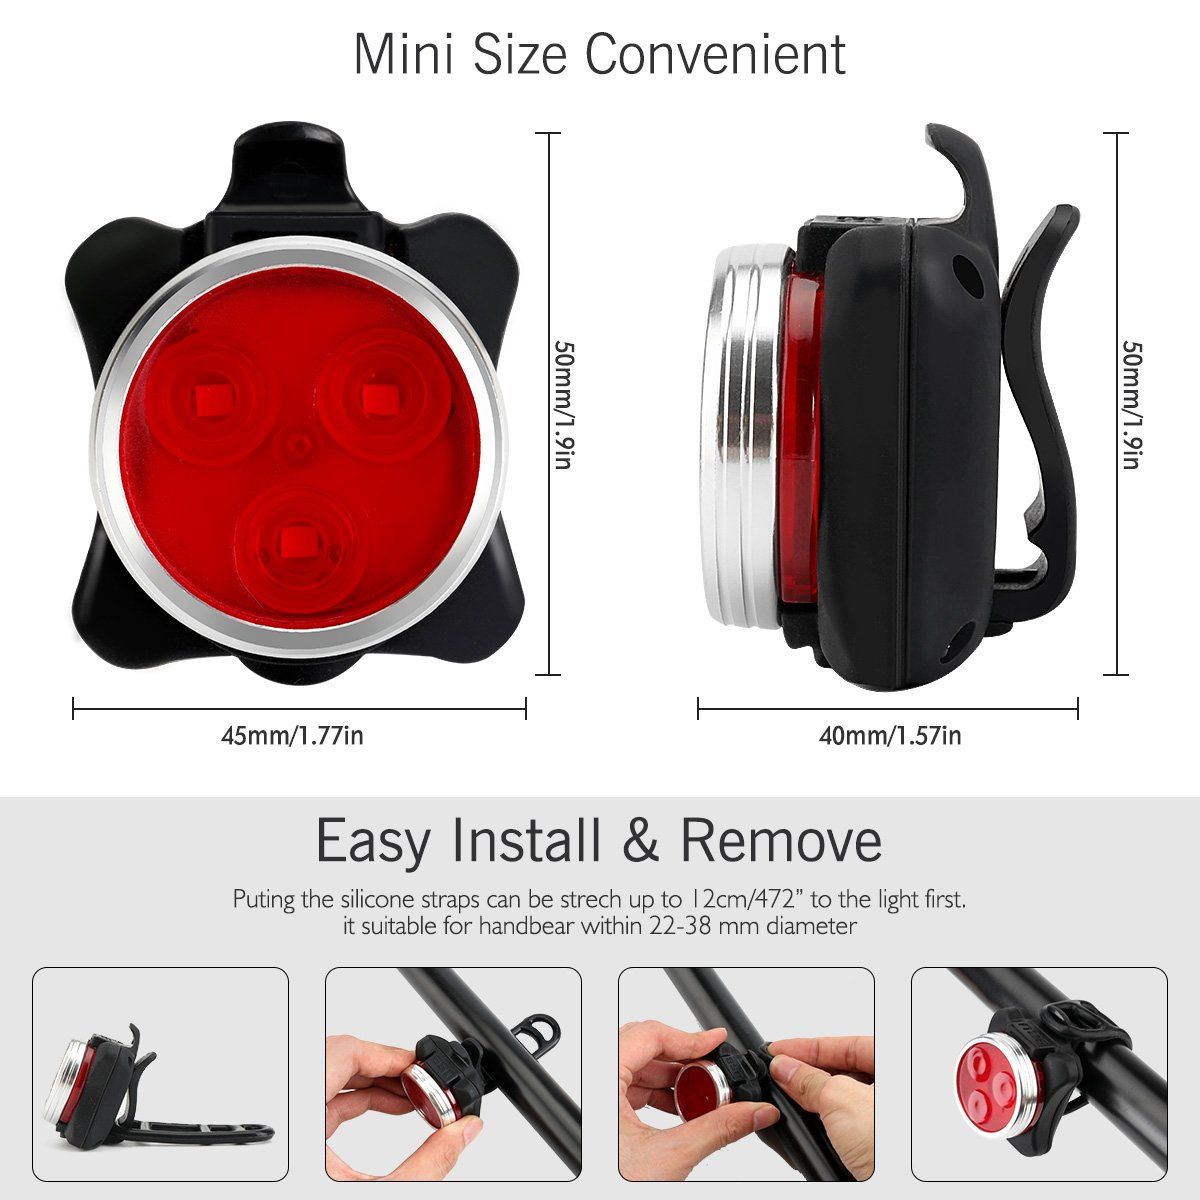 SOKLIT USB Rechargeable Bike Light Front and Rear Waterproof IPX4 Super Bright Bicycle LED Light Set 120 Lumen with 650mah Lithium Battery, 4 Light Mode Options, Including 6 Strap and 2 USB Cables by SOKLIT (Image #3)